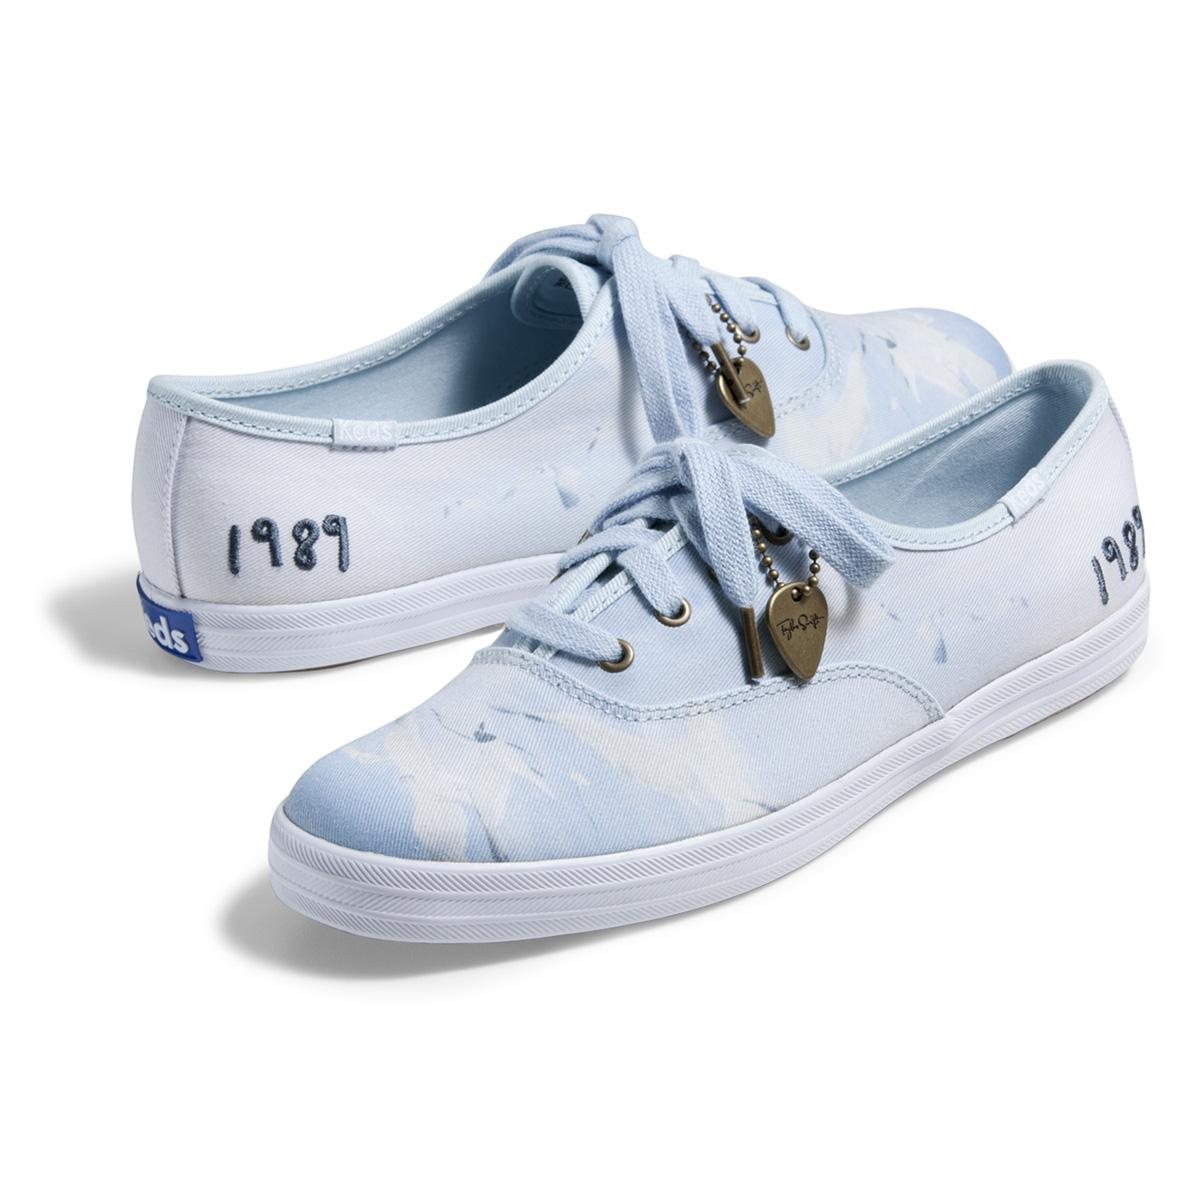 Be the first to find out when the entire 1989 World Tour Keds Collection arrives at http://t.co/sIygVMCz76. http://t.co/NwoasnqmdI